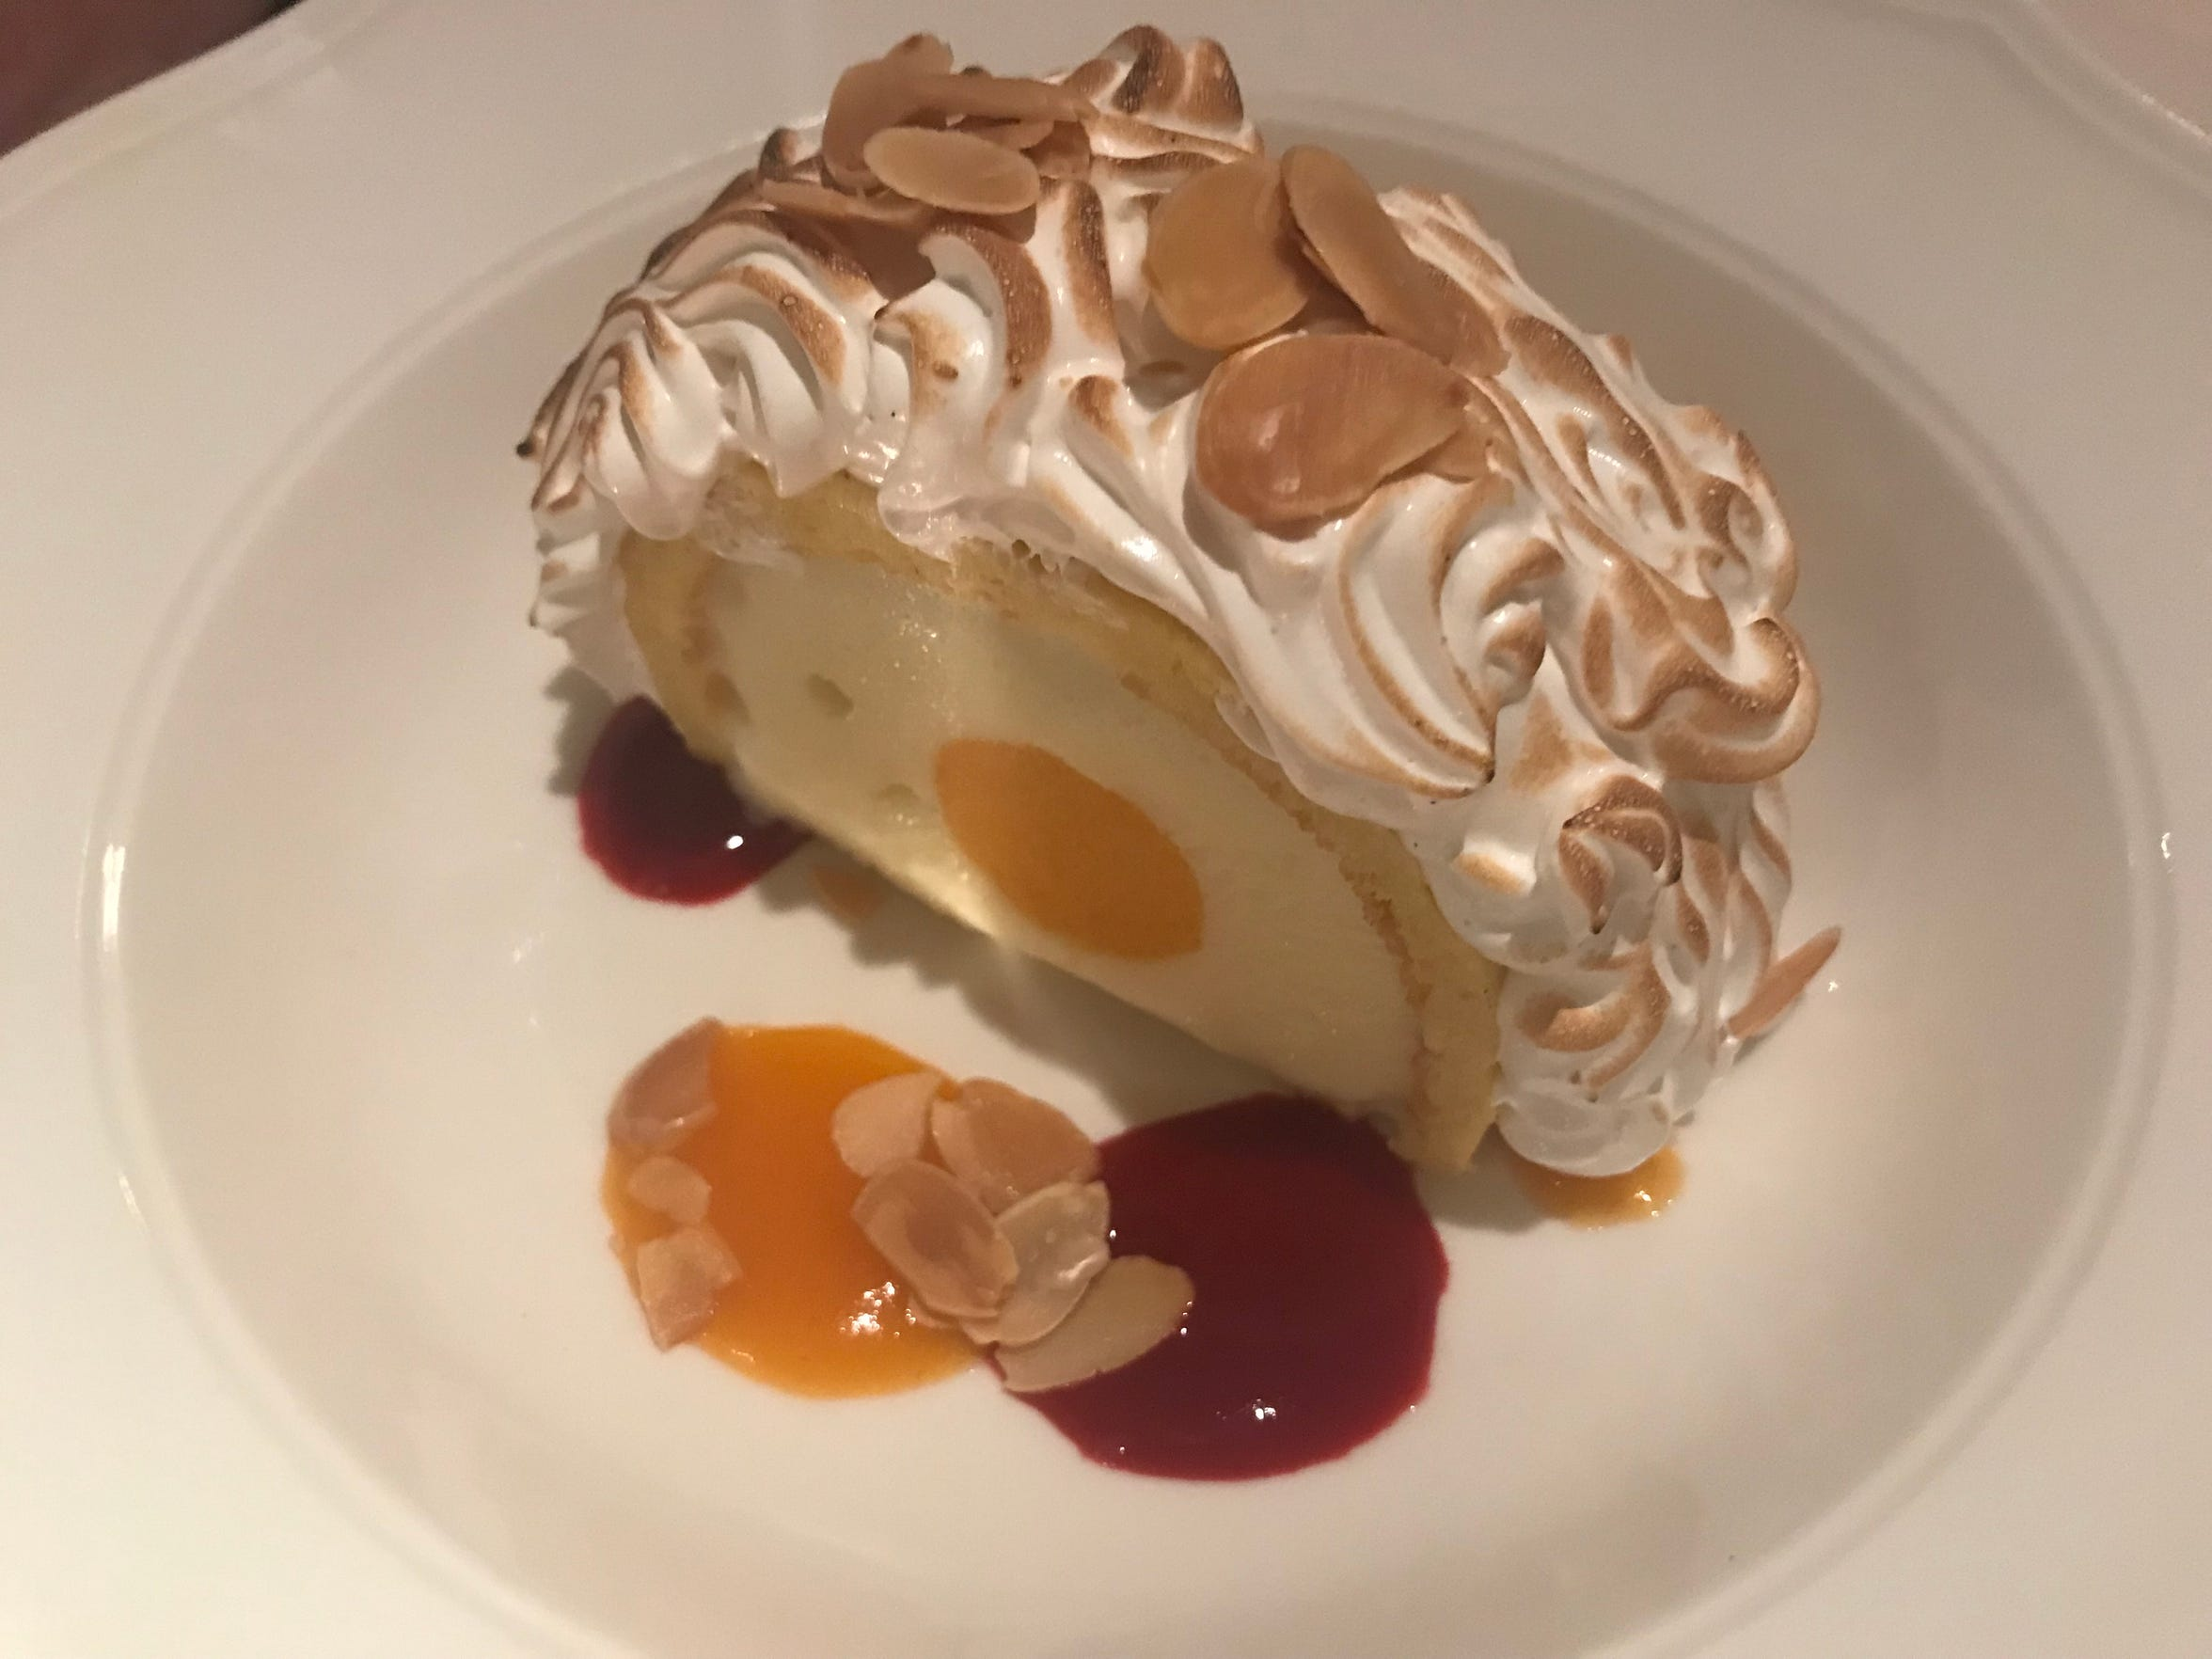 A summertime dessert at Lake Park Bistro, 3133 E. Newberry Blvd., was baked Alaska, with apricot sorbet at the center of almond ice cream.